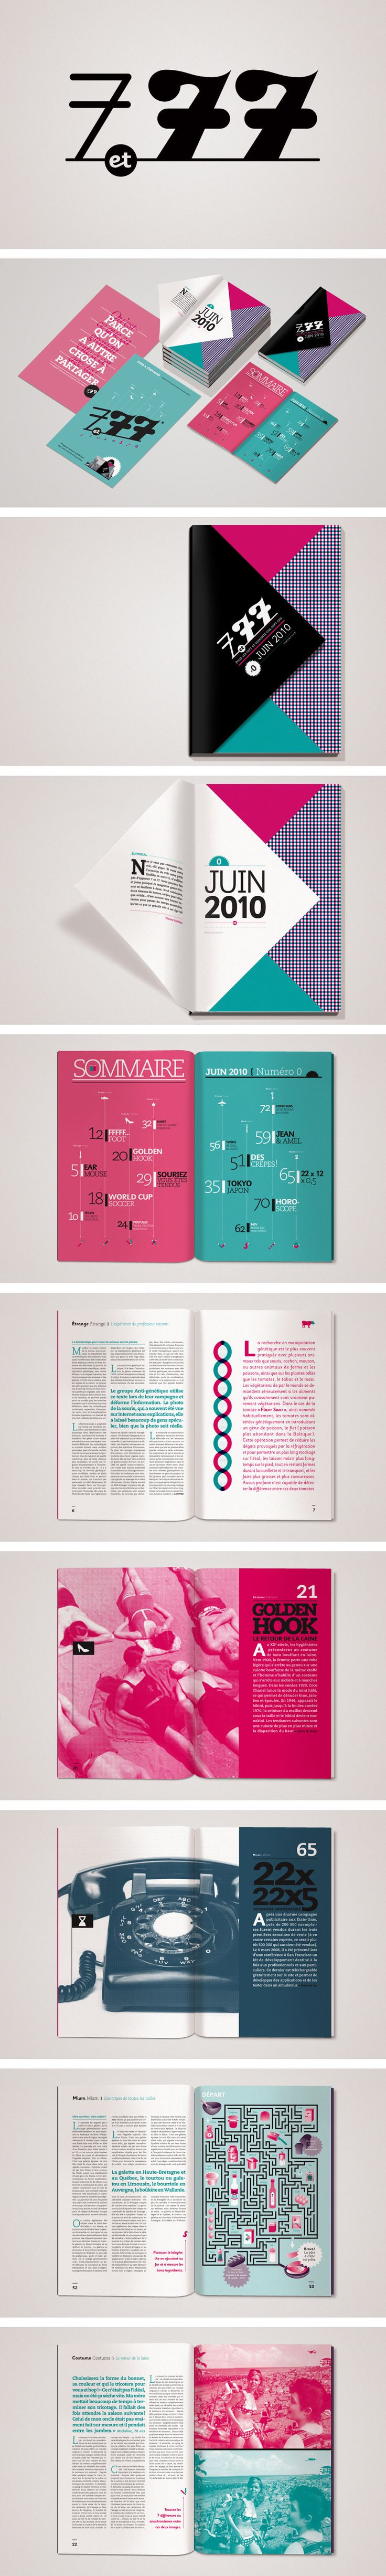 best edition images on pinterest graph design editorial